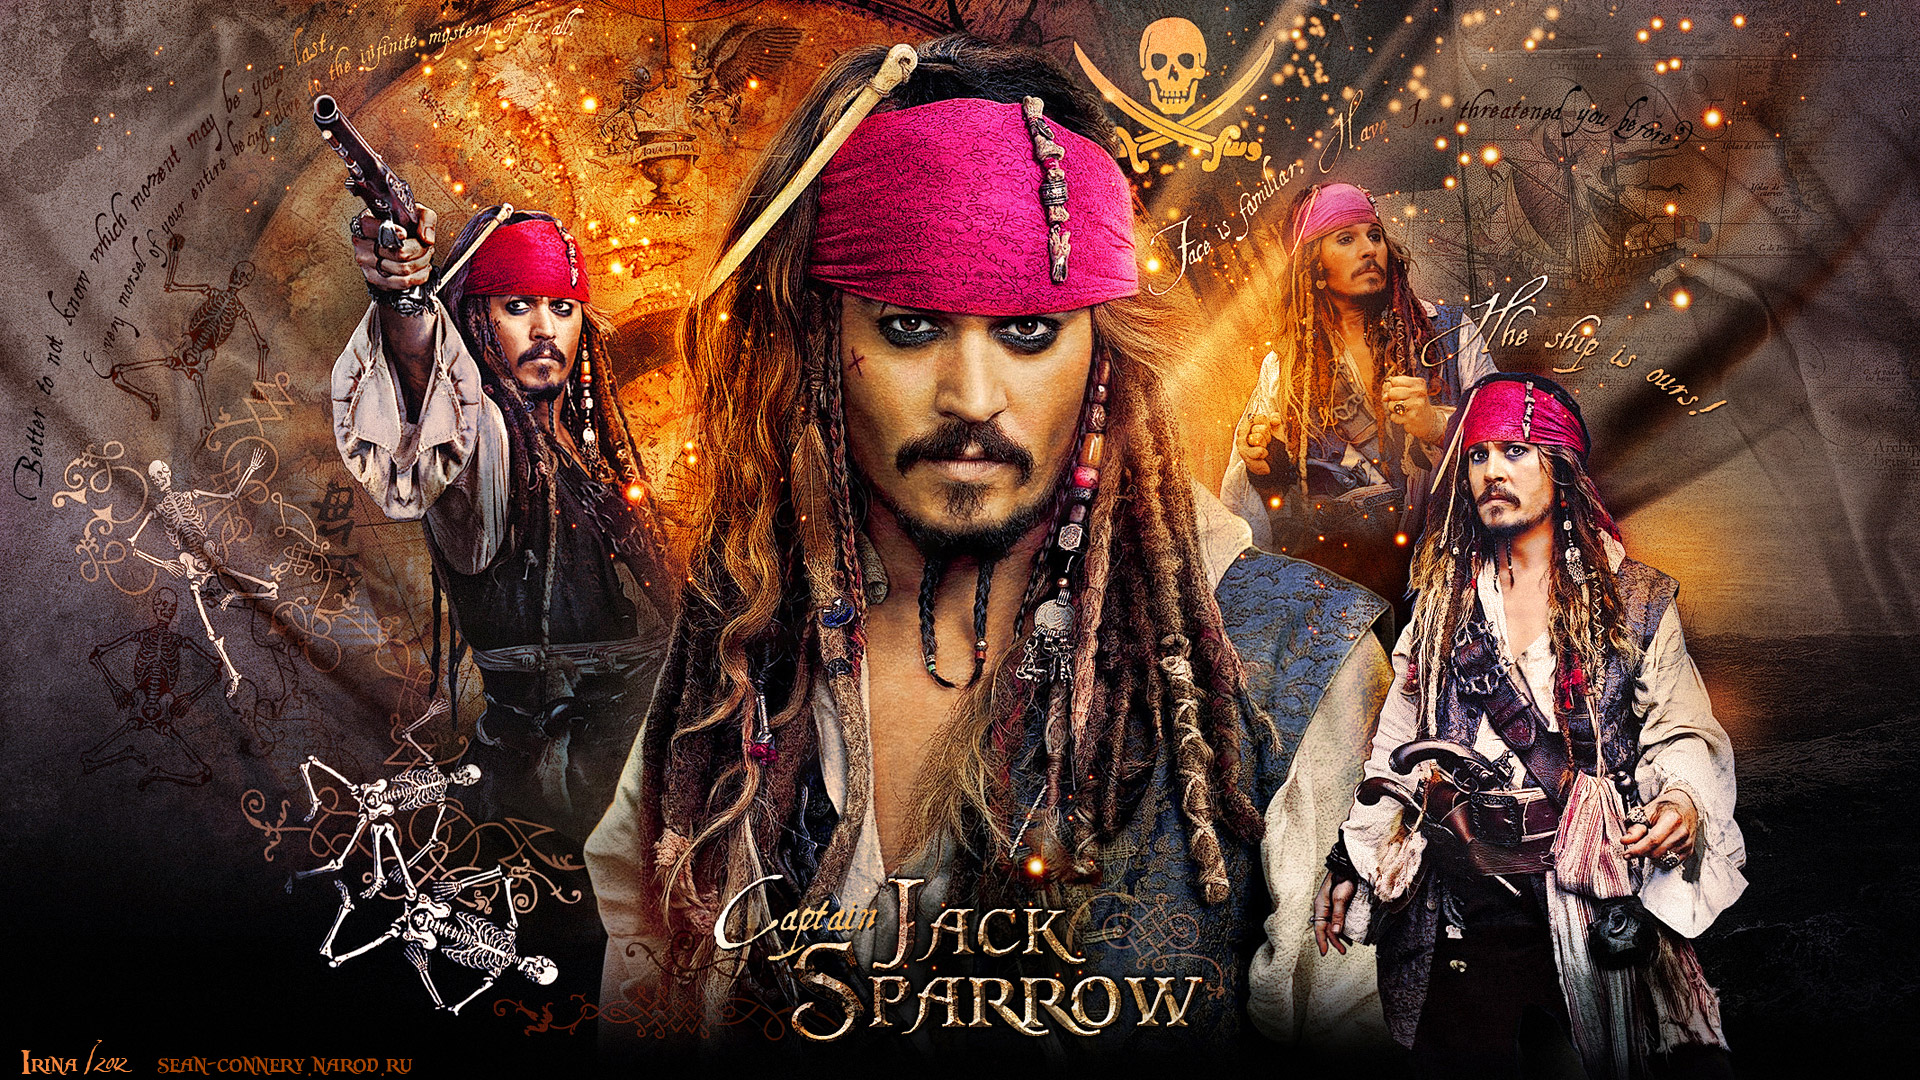 Johnny Depp Wallpaper, Pirates of the Caribbean. On Stranger Tides ...